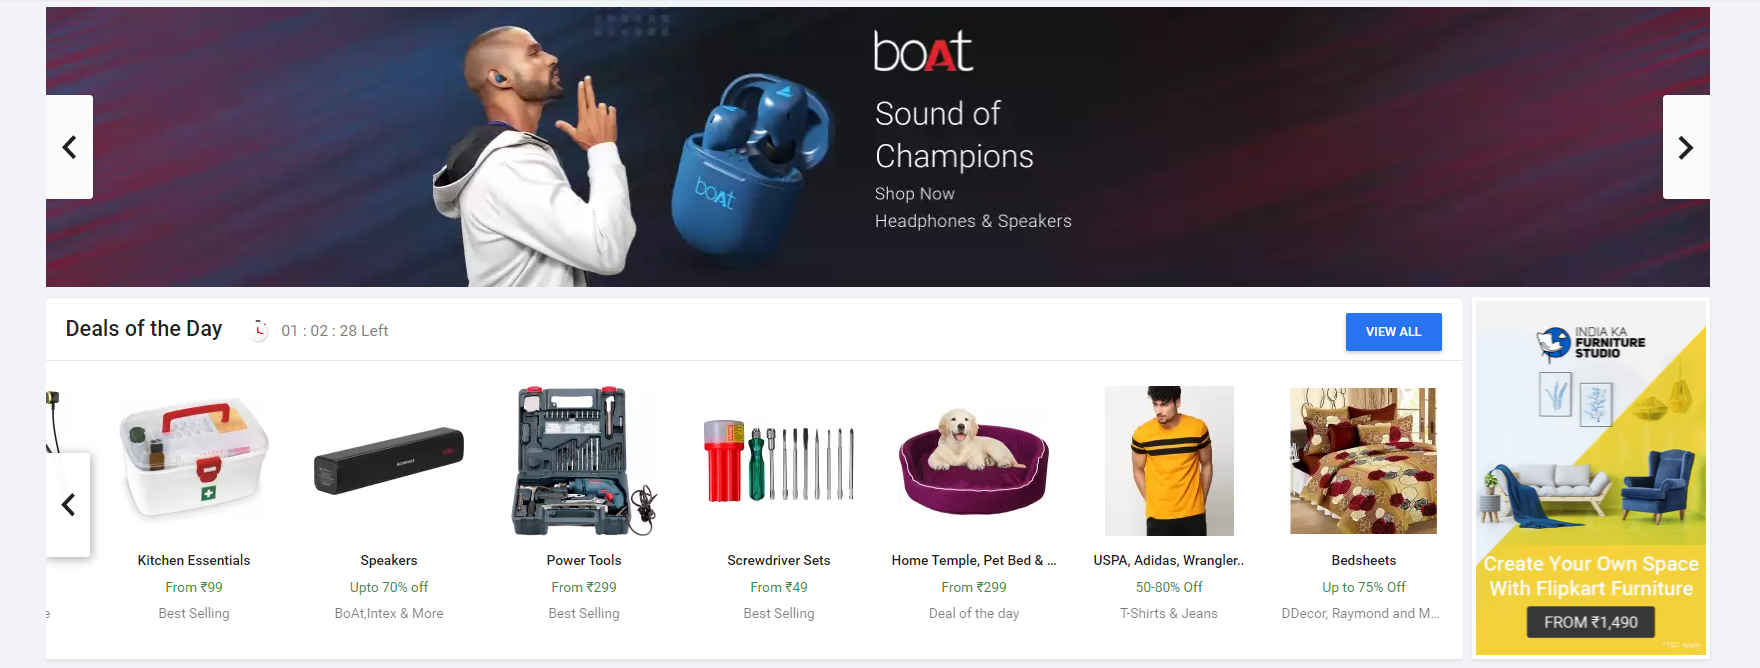 Example#1 of Product Carousel